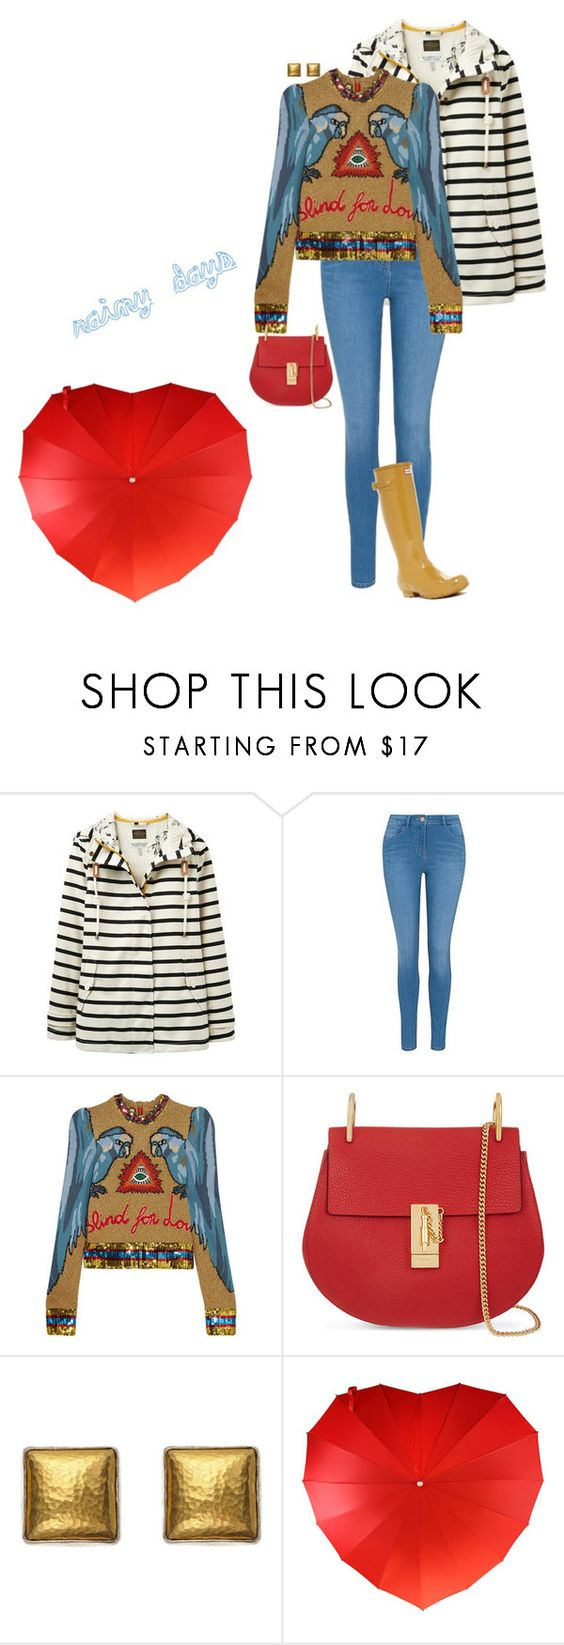 """Unbenannt #739"" by lila77 ❤ liked on Polyvore featuring Joules, George, Gucci, Chloé, Gurhan and Hunter"